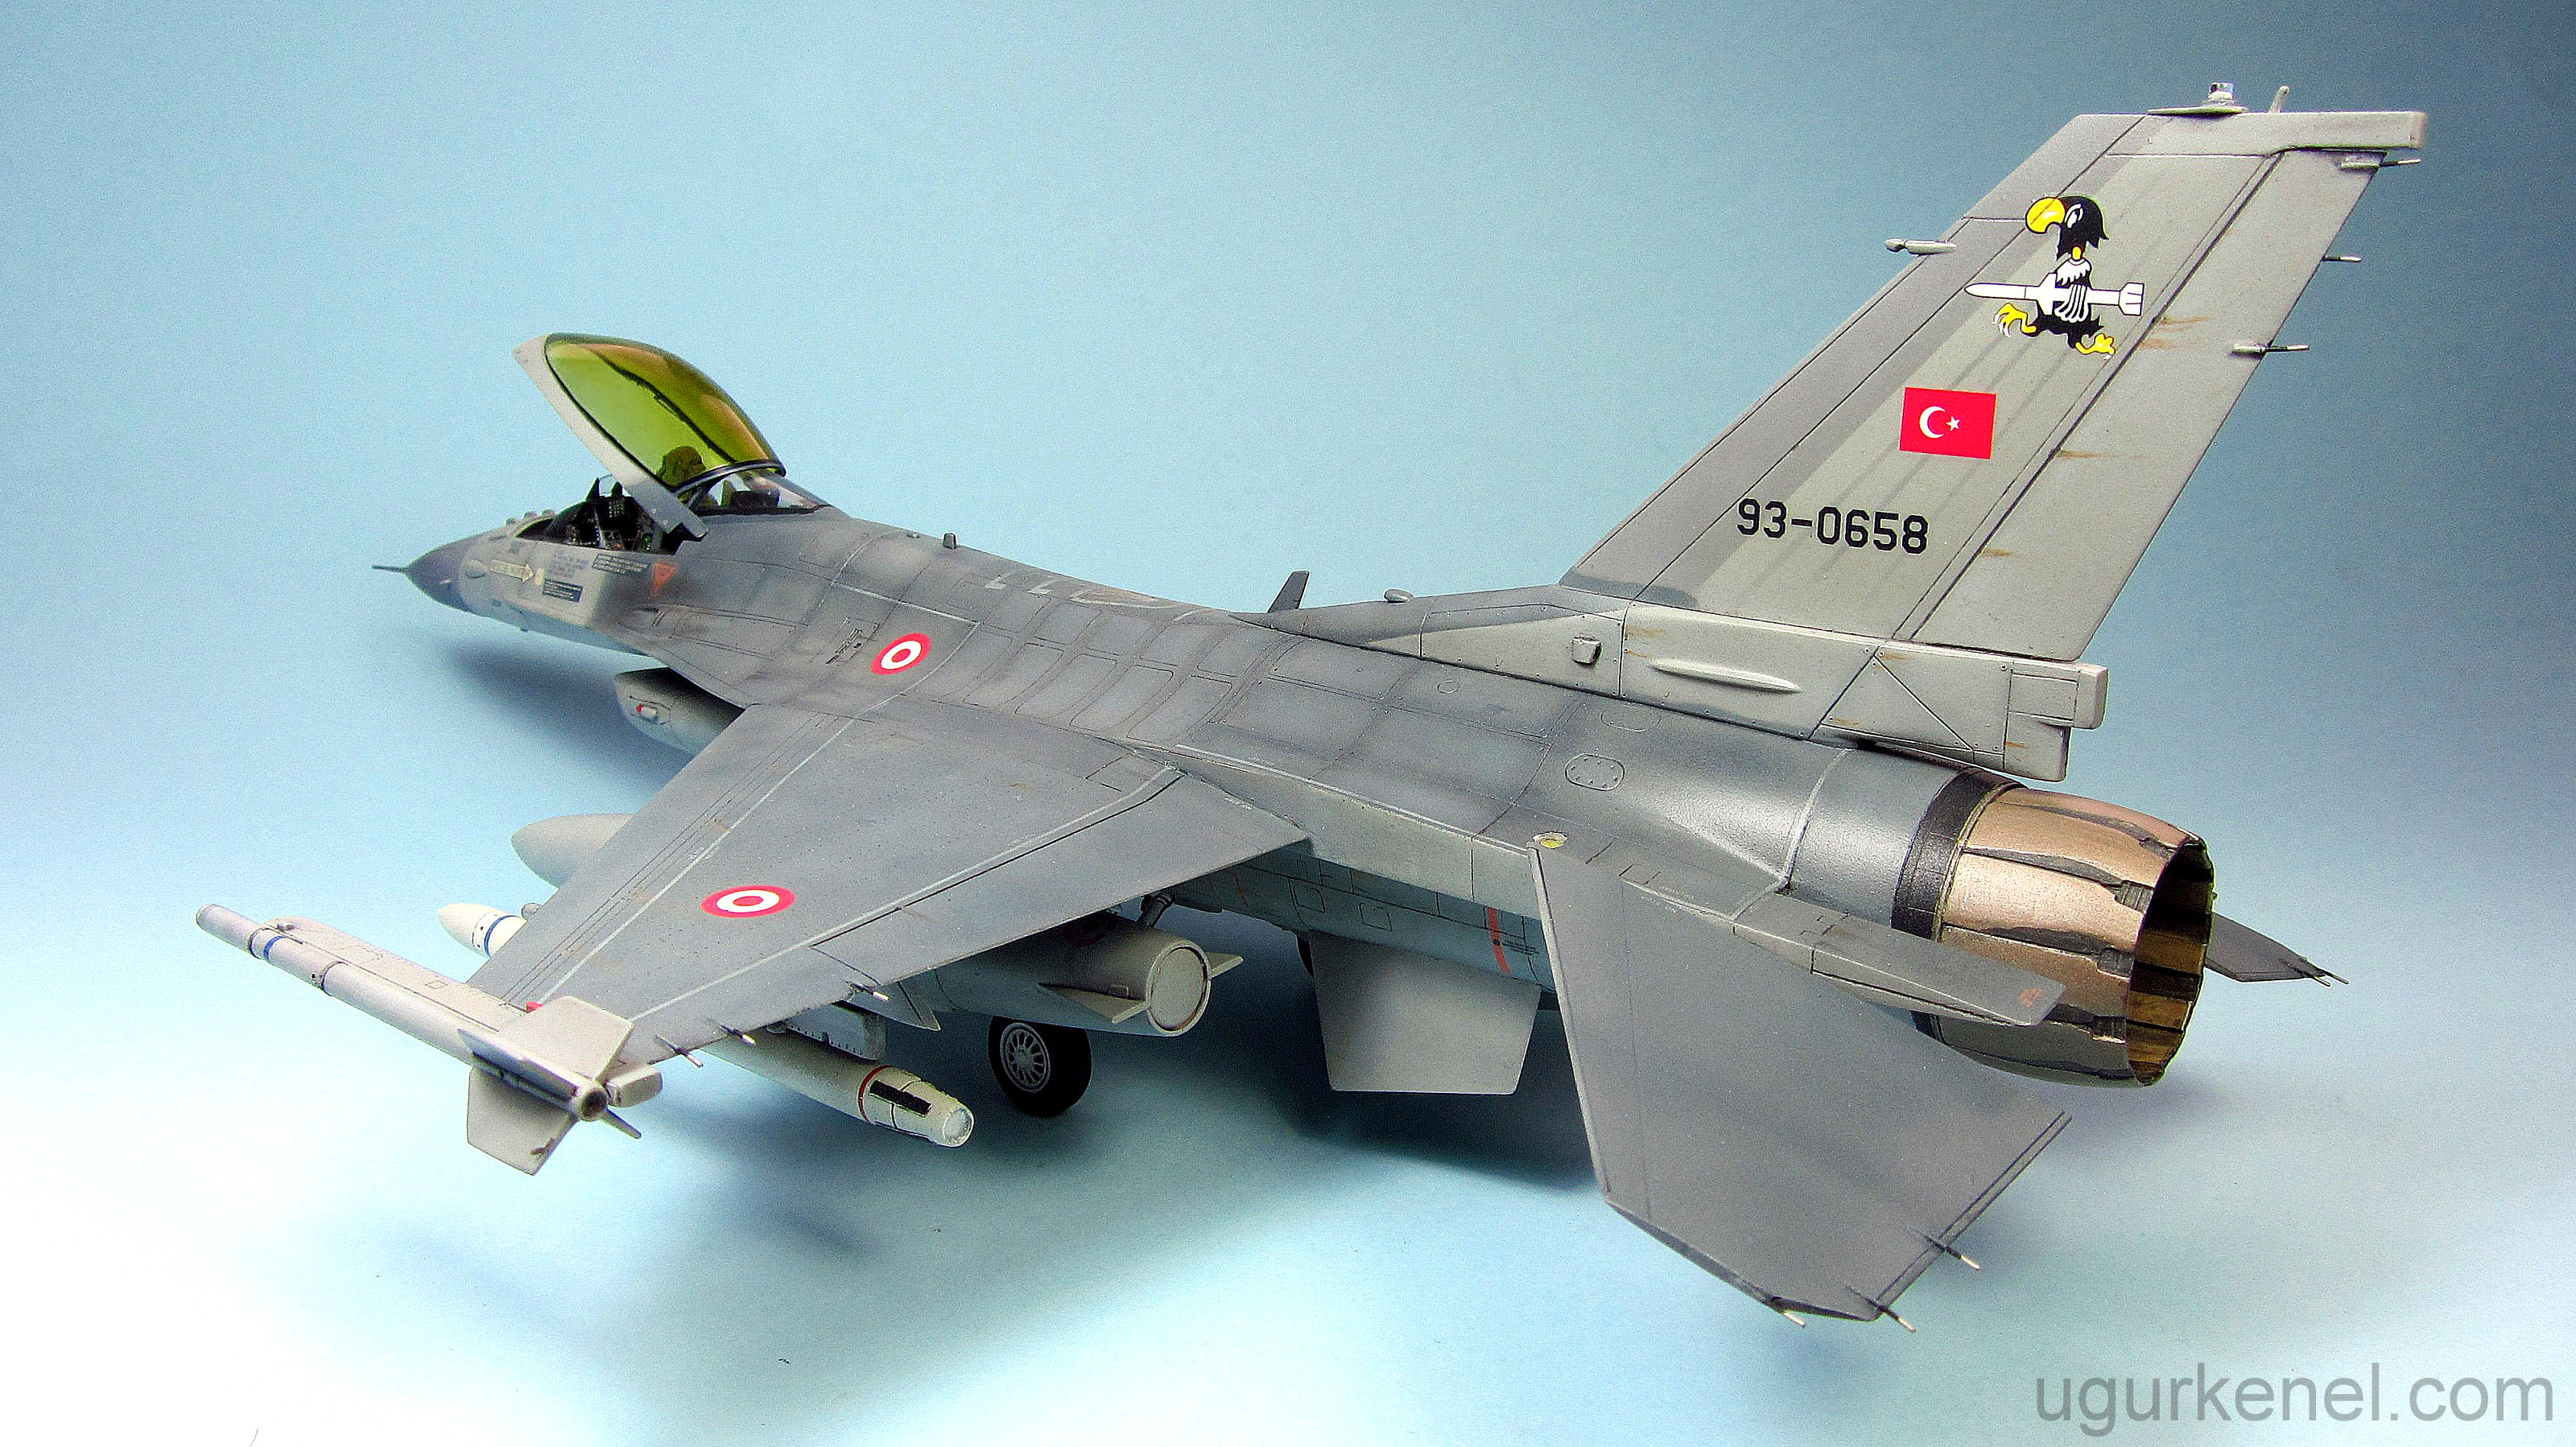 Turkish Air Force F 16c Block 50 151 Filo Ugur Kenel Plastic Aircraft Modelling Works Many other converters available for free. ugur kenel plastic aircraft modelling works